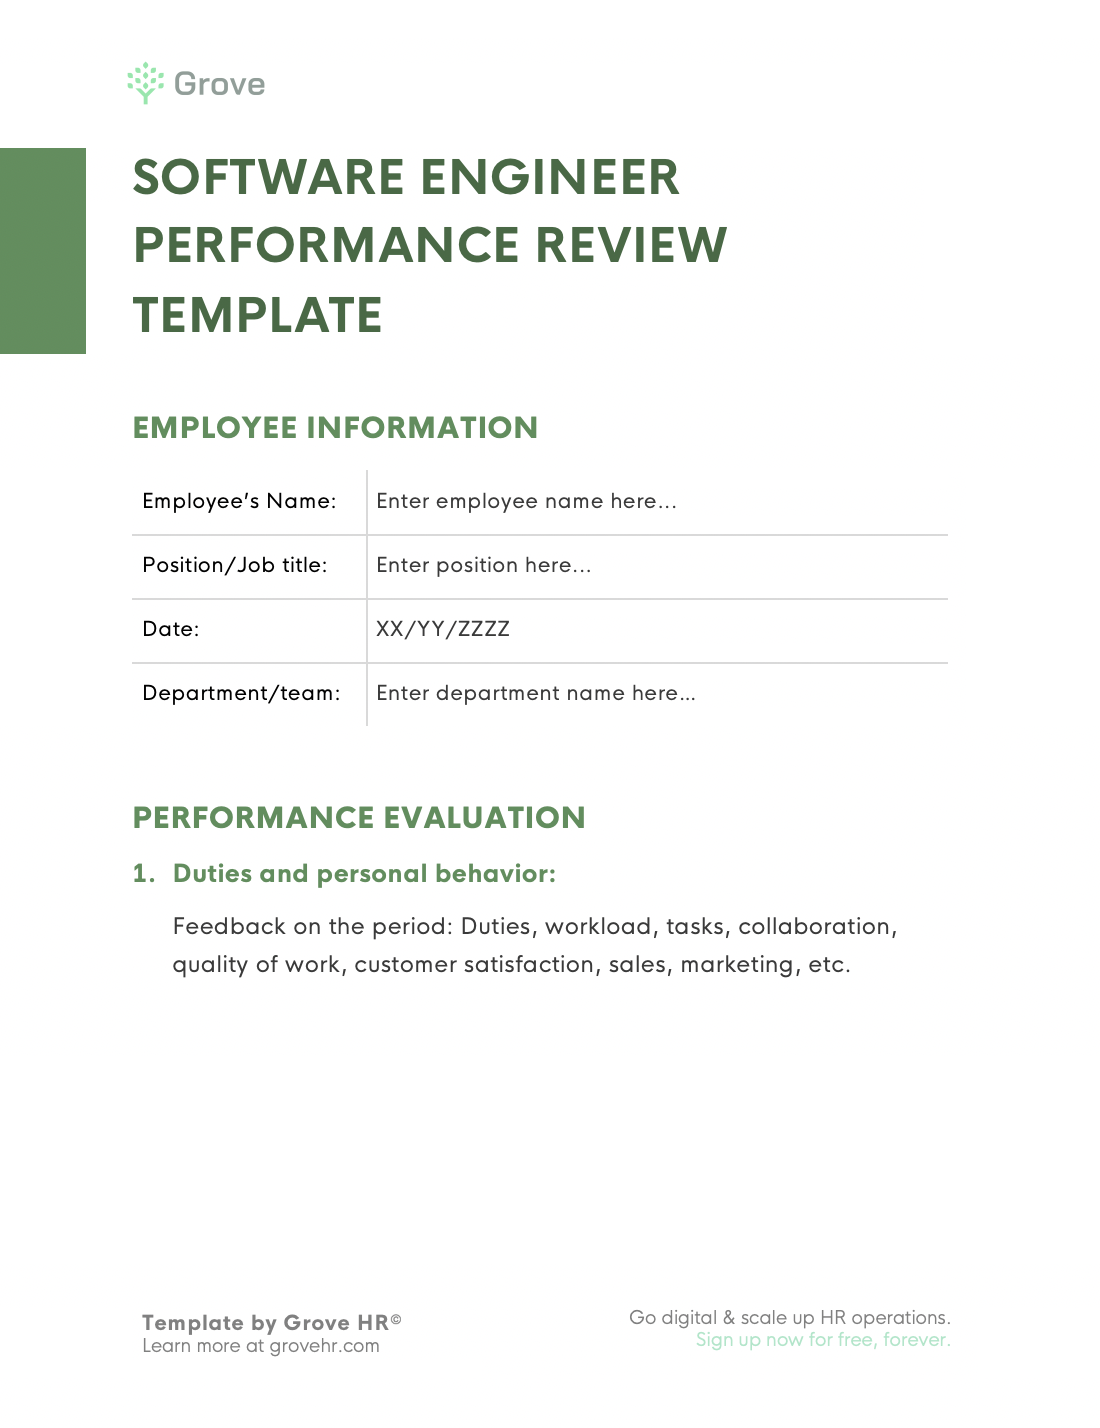 Grove HR - Software engineer performance review template slider 2